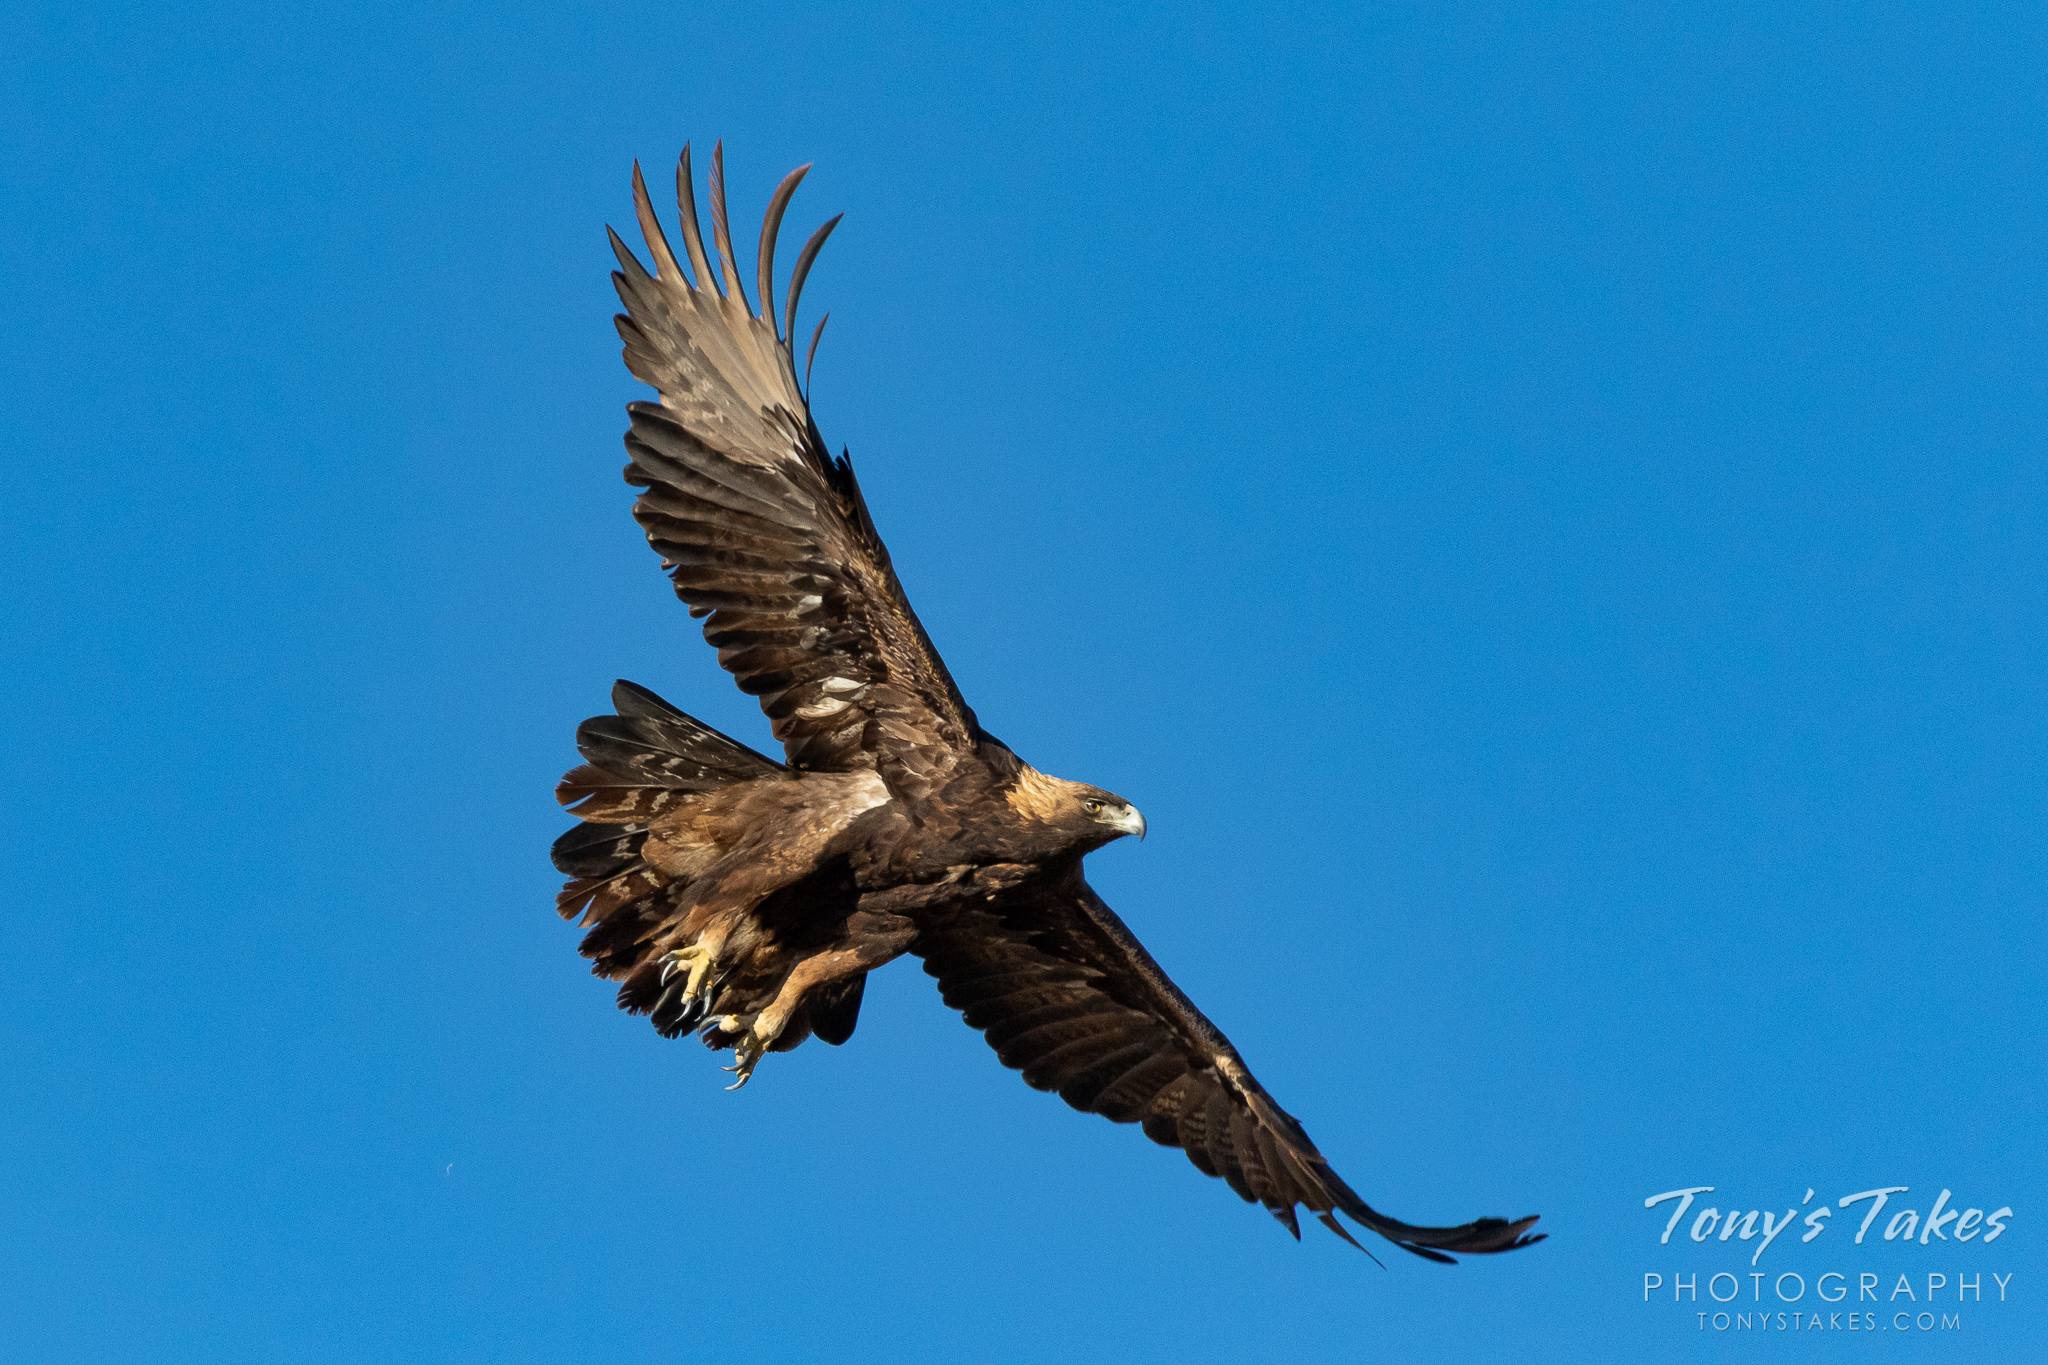 A golden eagle takes flight in Boulder County, Colorado. (© Tony's Takes)